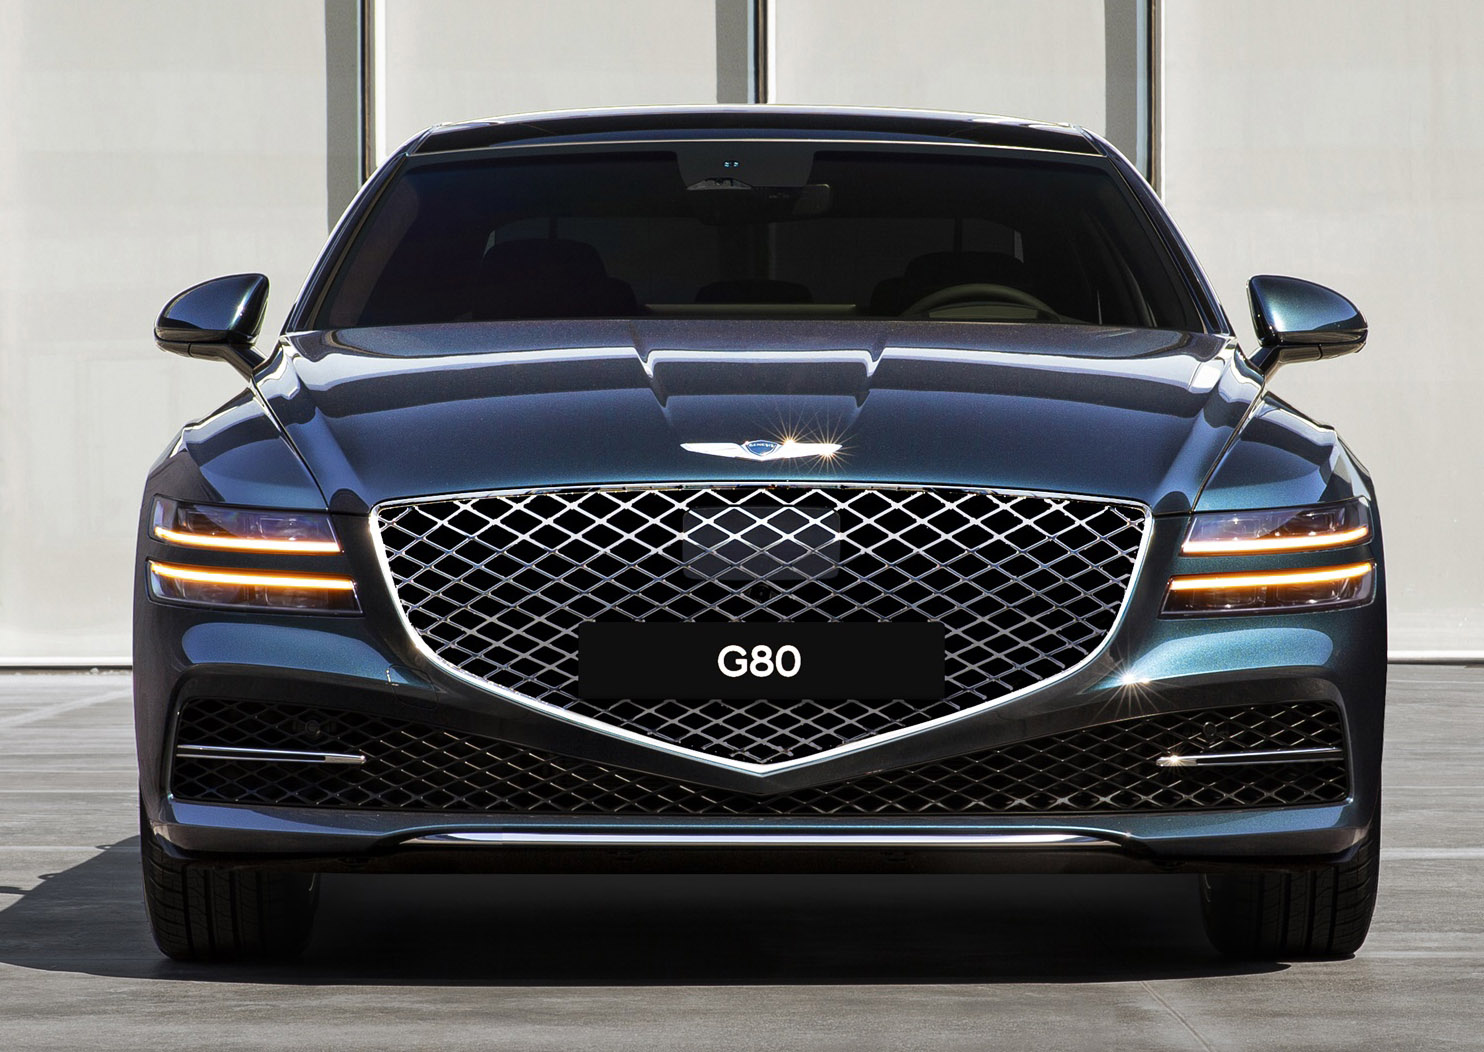 Genesis G80 sedan debuts online as coronavirus shuts auto shows